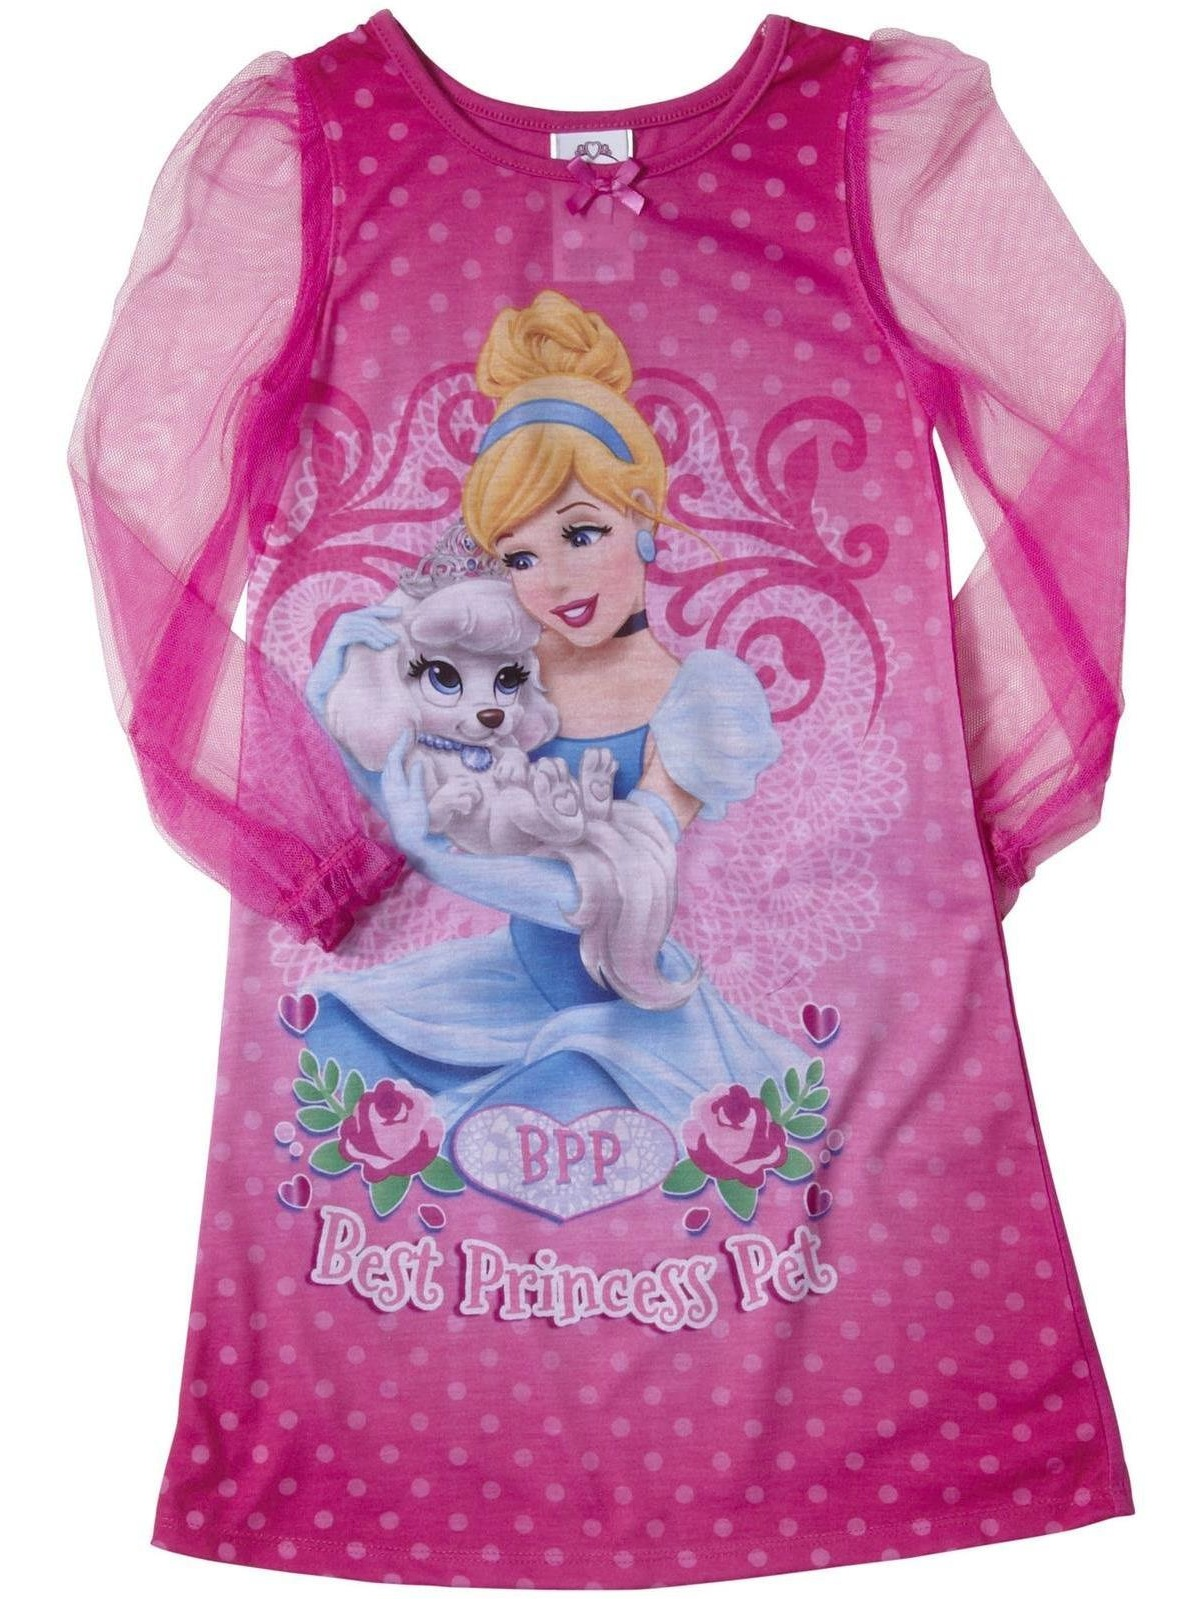 Disney Little Girls Princess Palace Pets Toddler Gown, Nightgown sizes 2T-4T, Cinderella Long Sleeve, Size: 2T